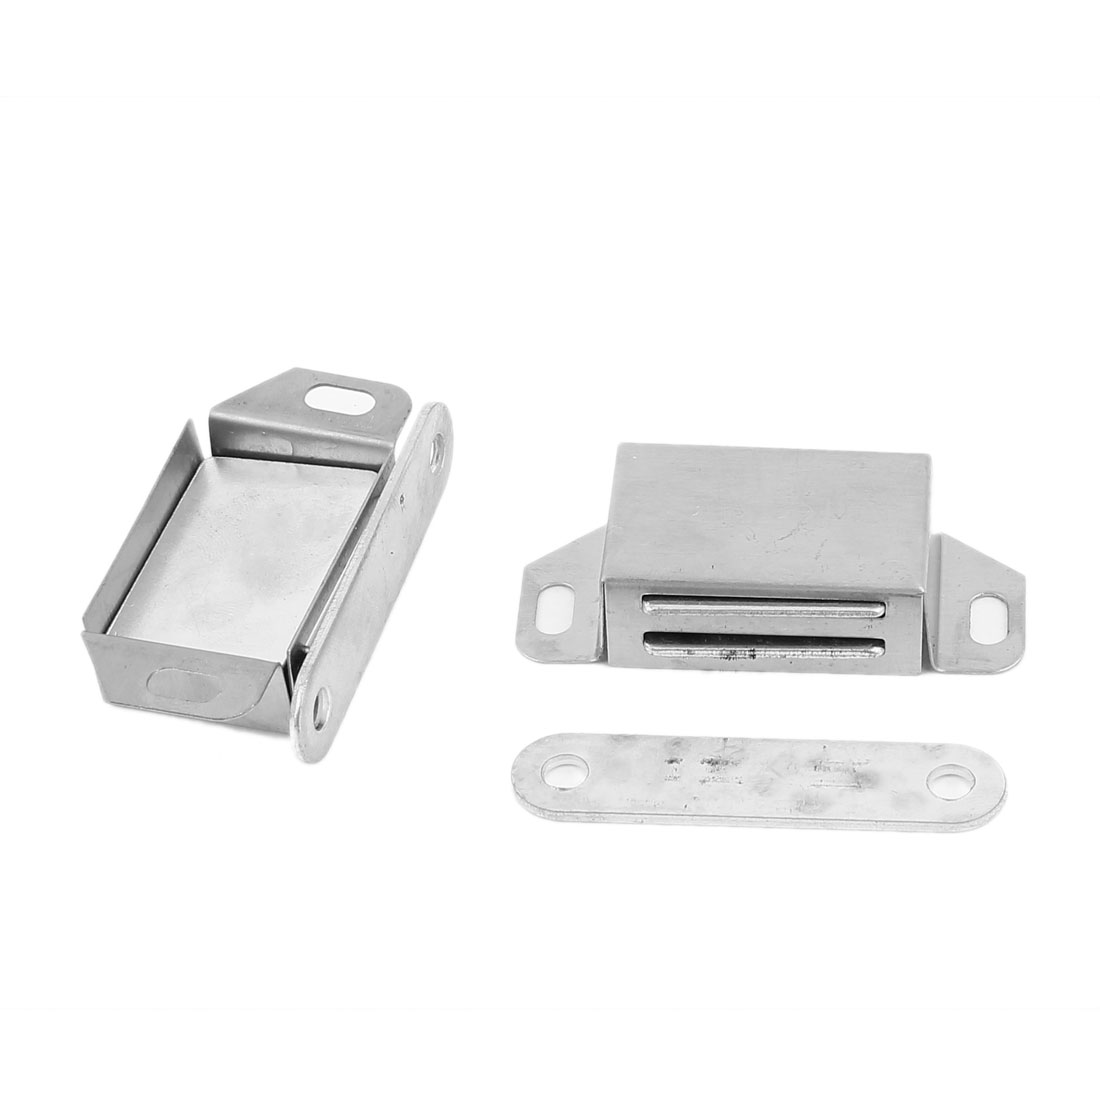 5.6cm Long Stainless Steel Single Magnetic Catch 2 Pcs for Cabinet Door